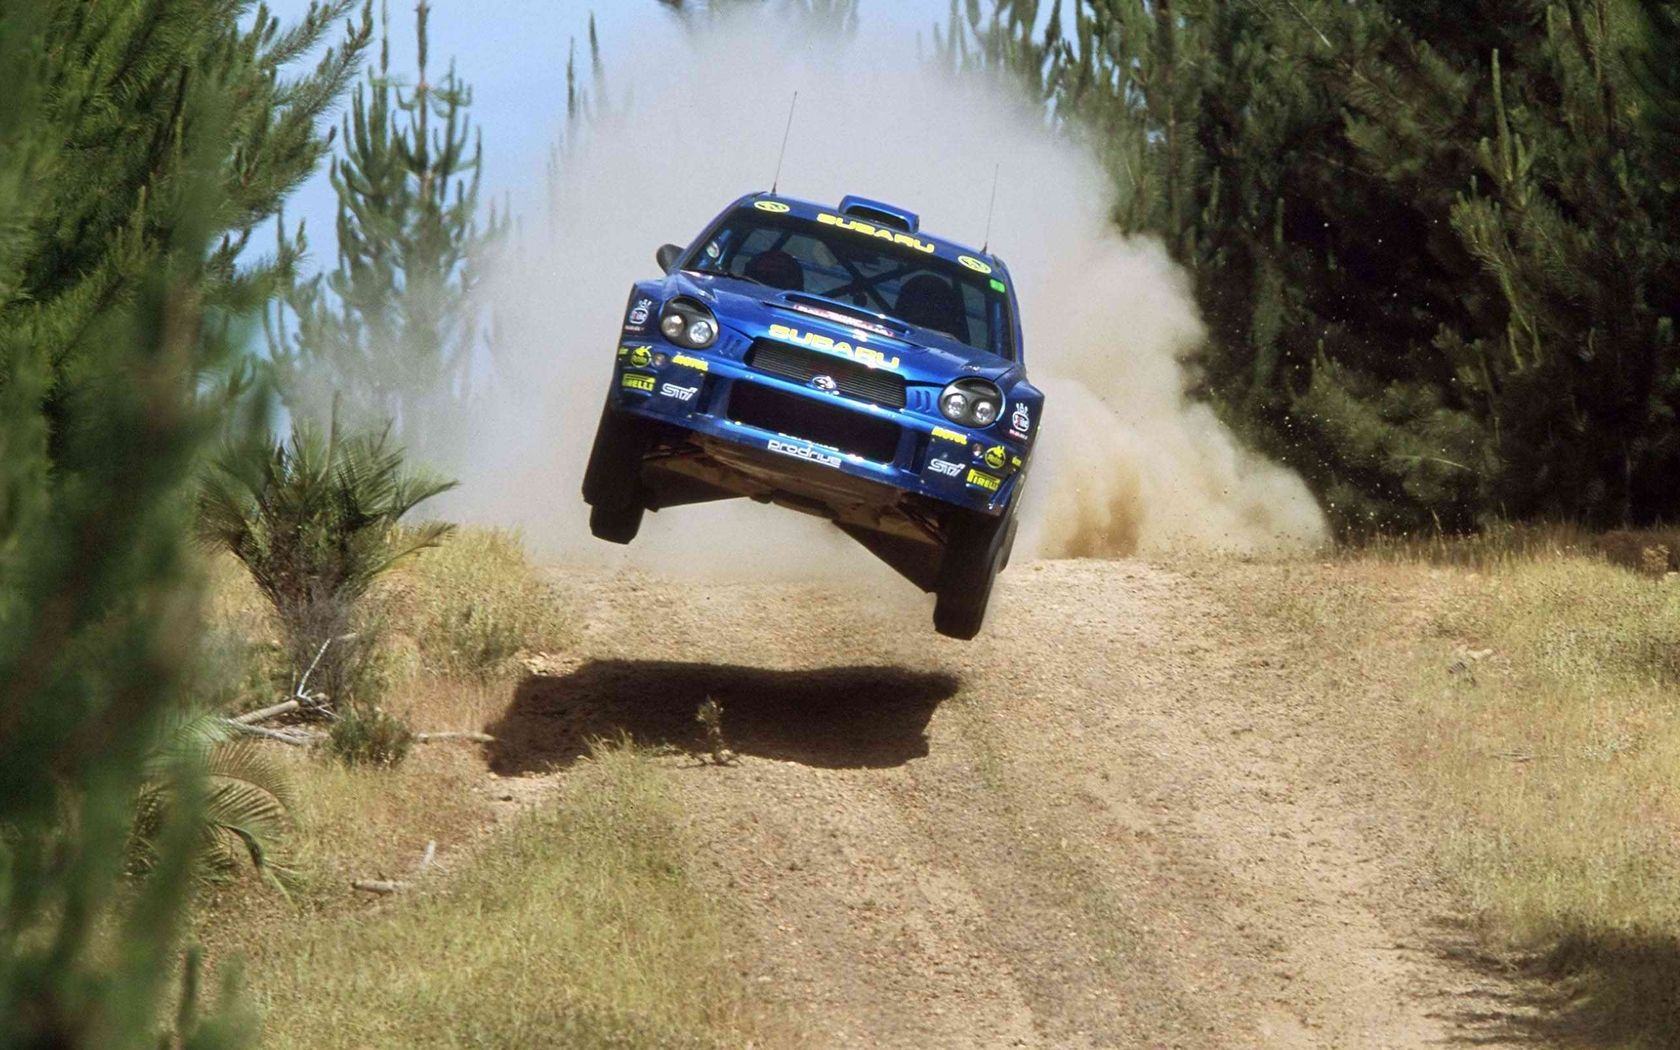 Cars Jumping Rally Subaru Impreza Wrx - Rally Car Wallpaper | Rally ...